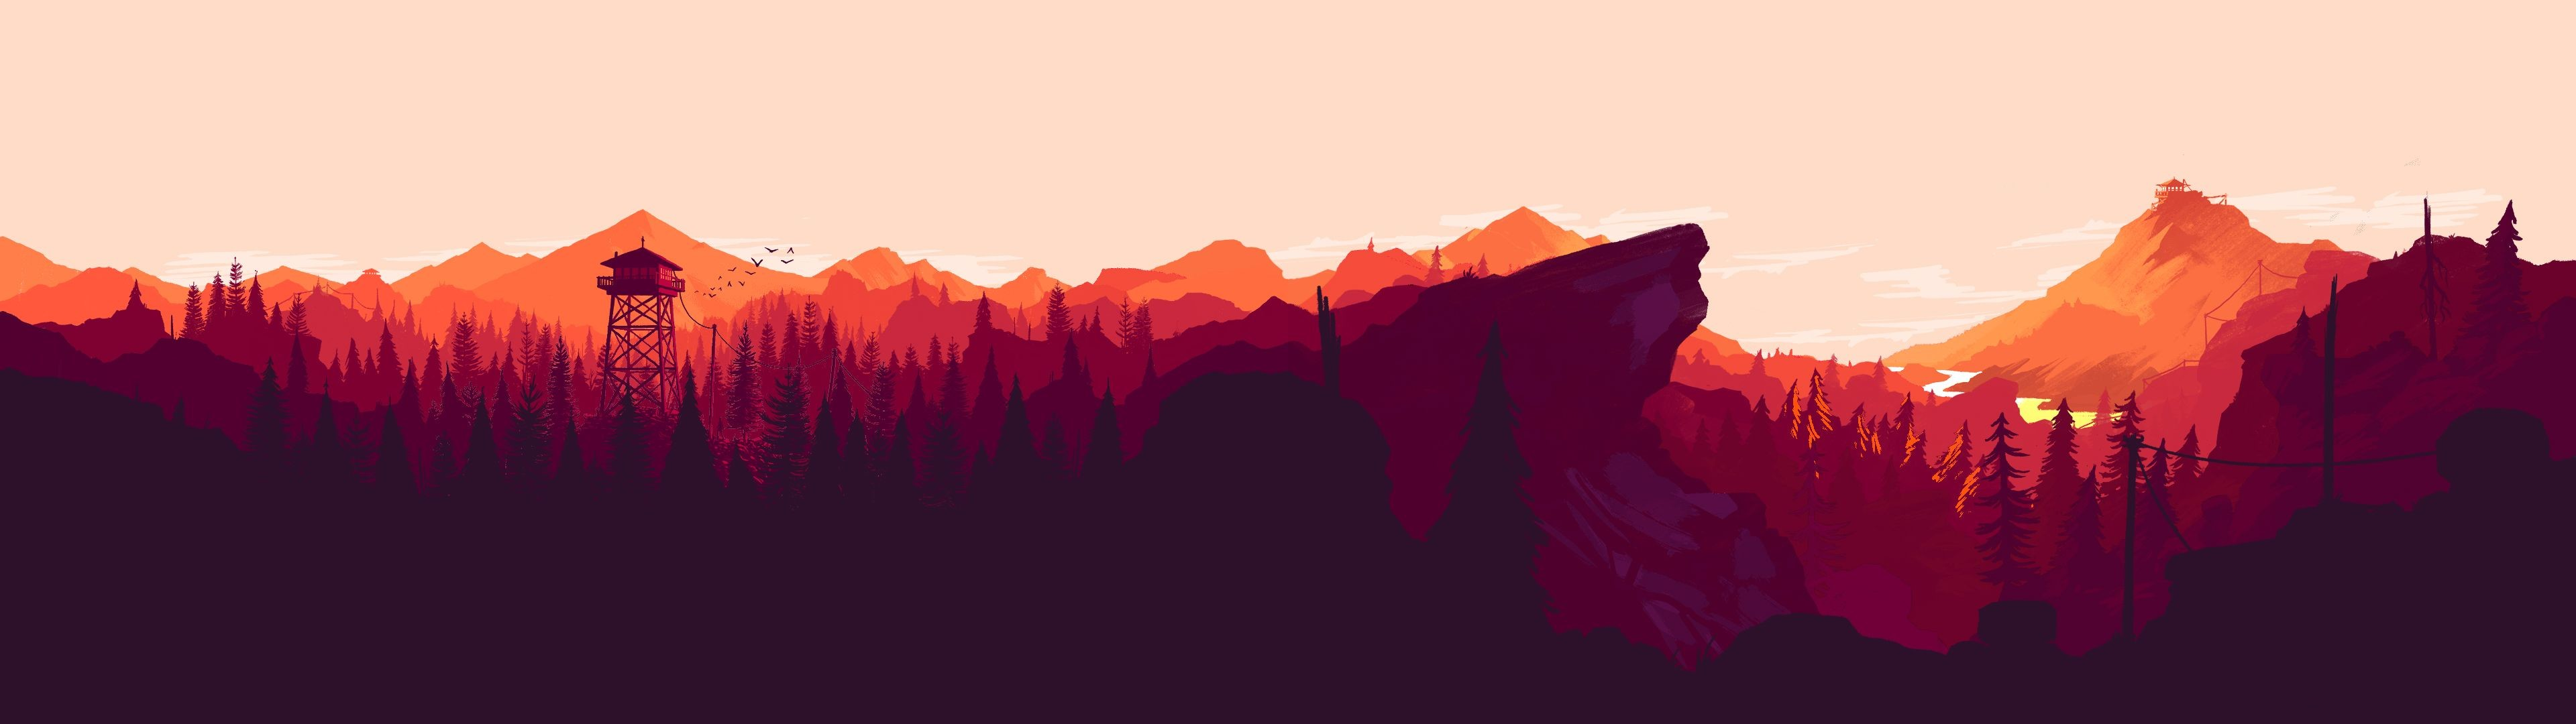 Res: 3840x1080, I made some dual and single monitor Firewatch wallpapers for different  times of the day